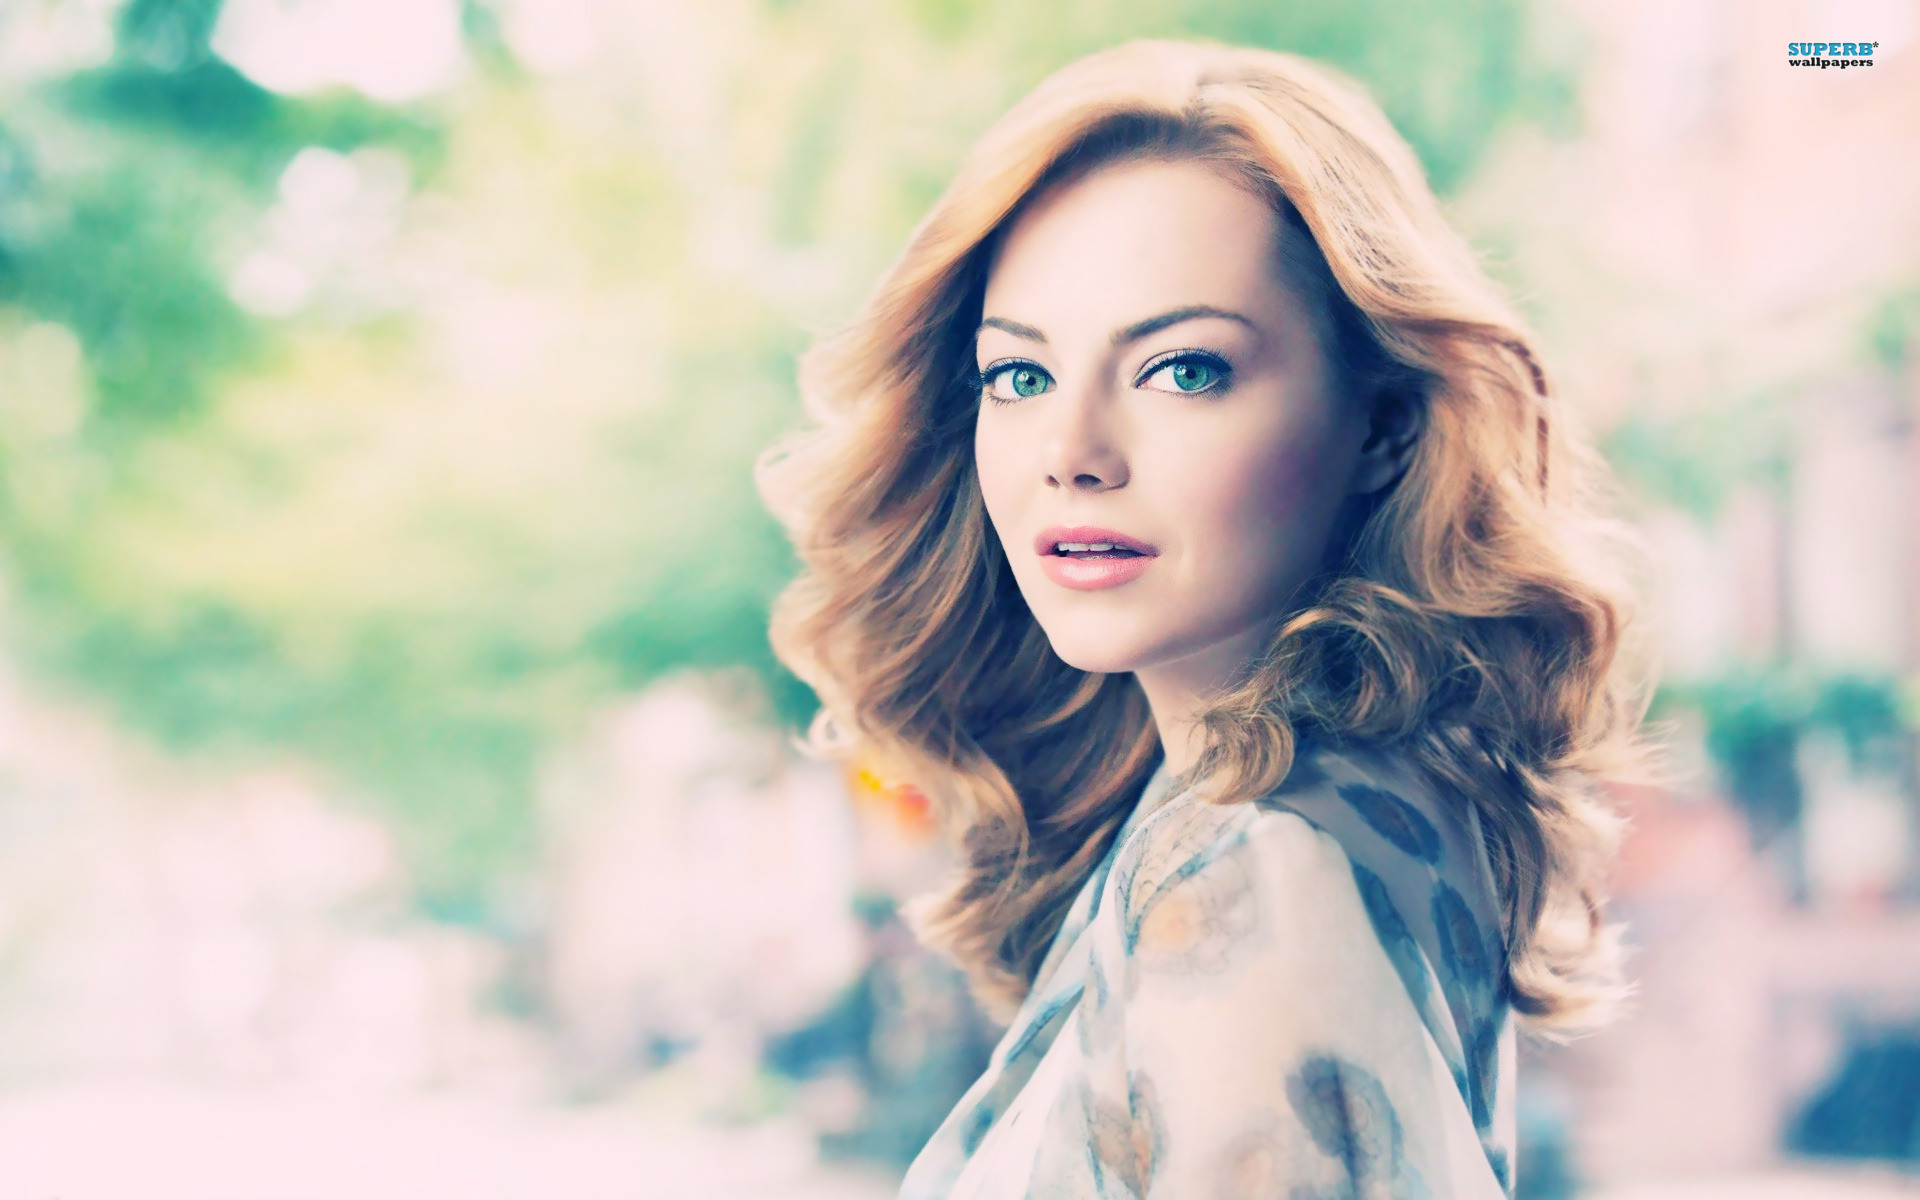 Emma stone wallpapers high resolution and quality download - High resolution wallpaper celebrity ...